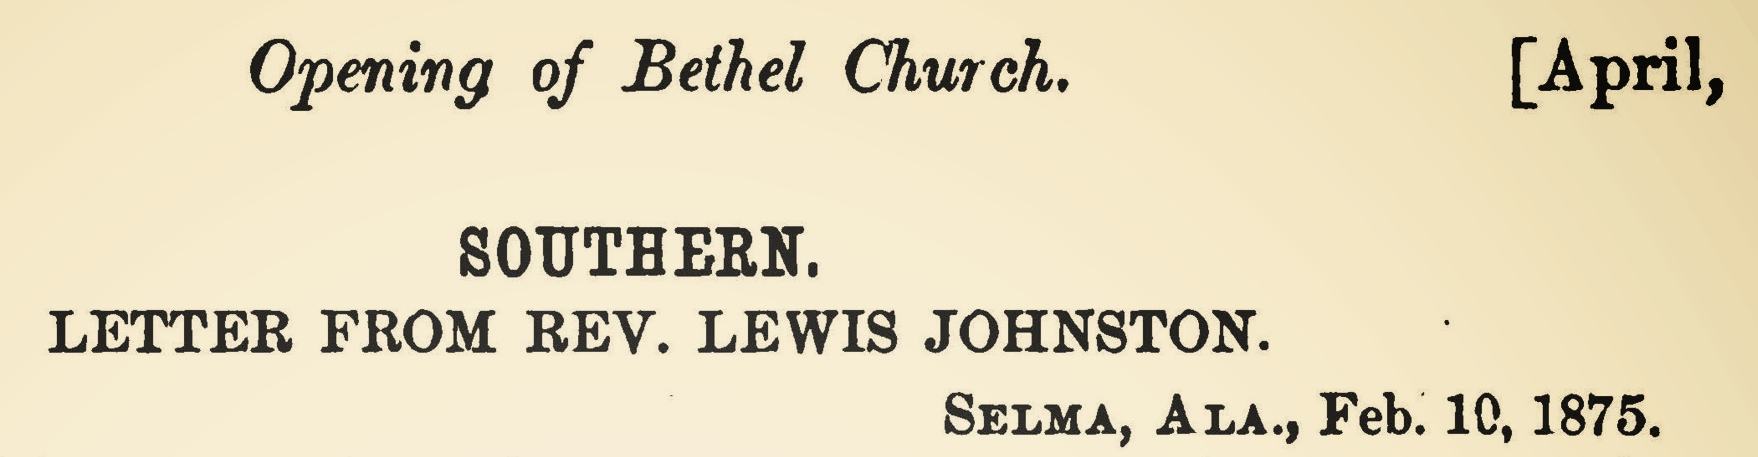 Johnston, Lewis, 1875 Mission Report Title Page.jpg